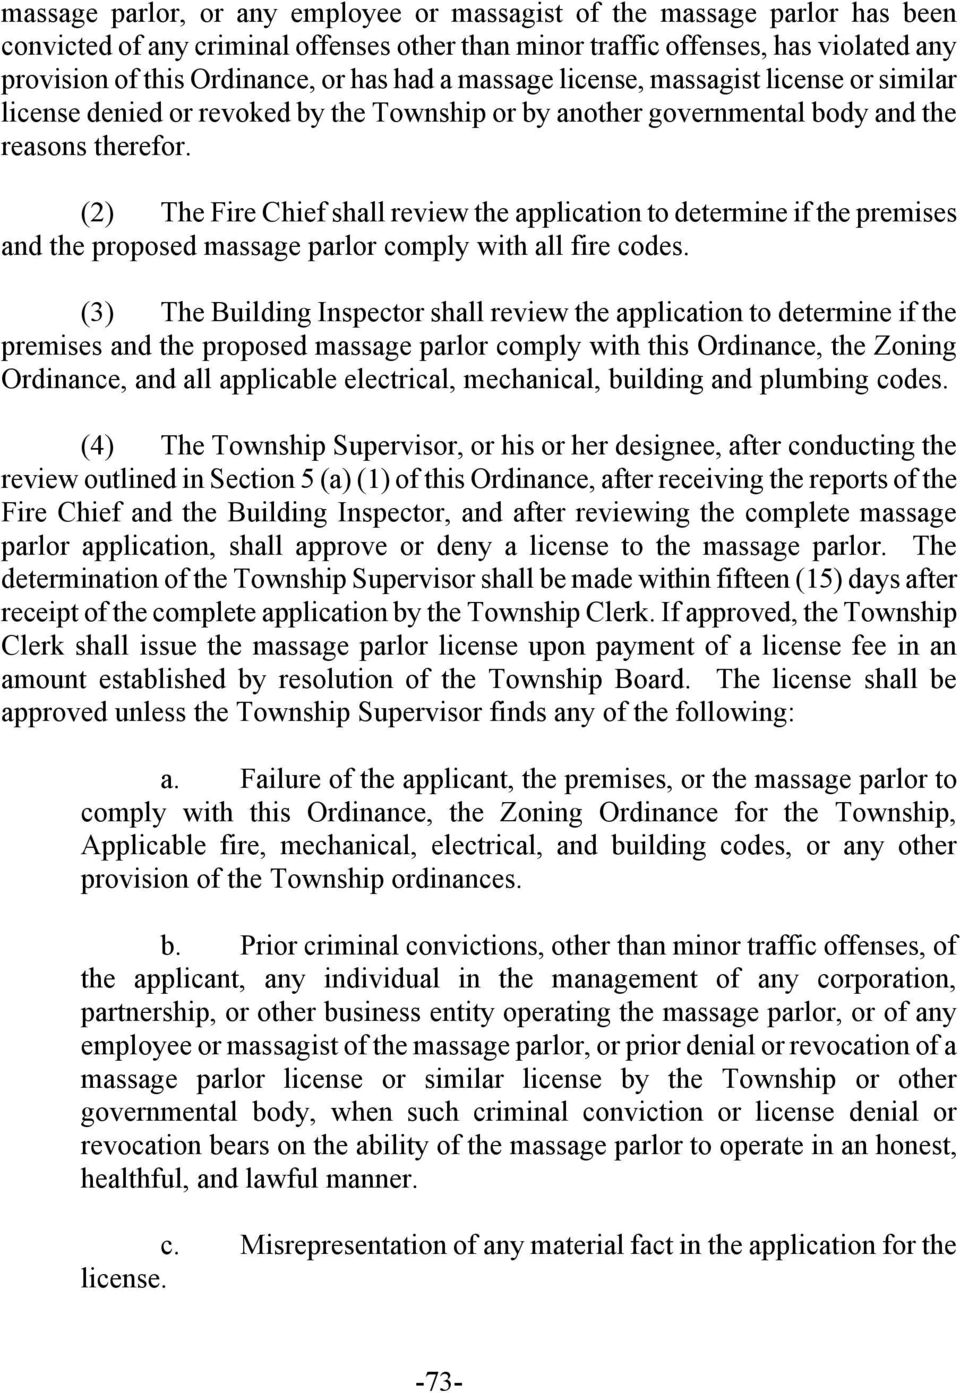 (2) The Fire Chief shall review the application to determine if the premises and the proposed massage parlor comply with all fire codes.